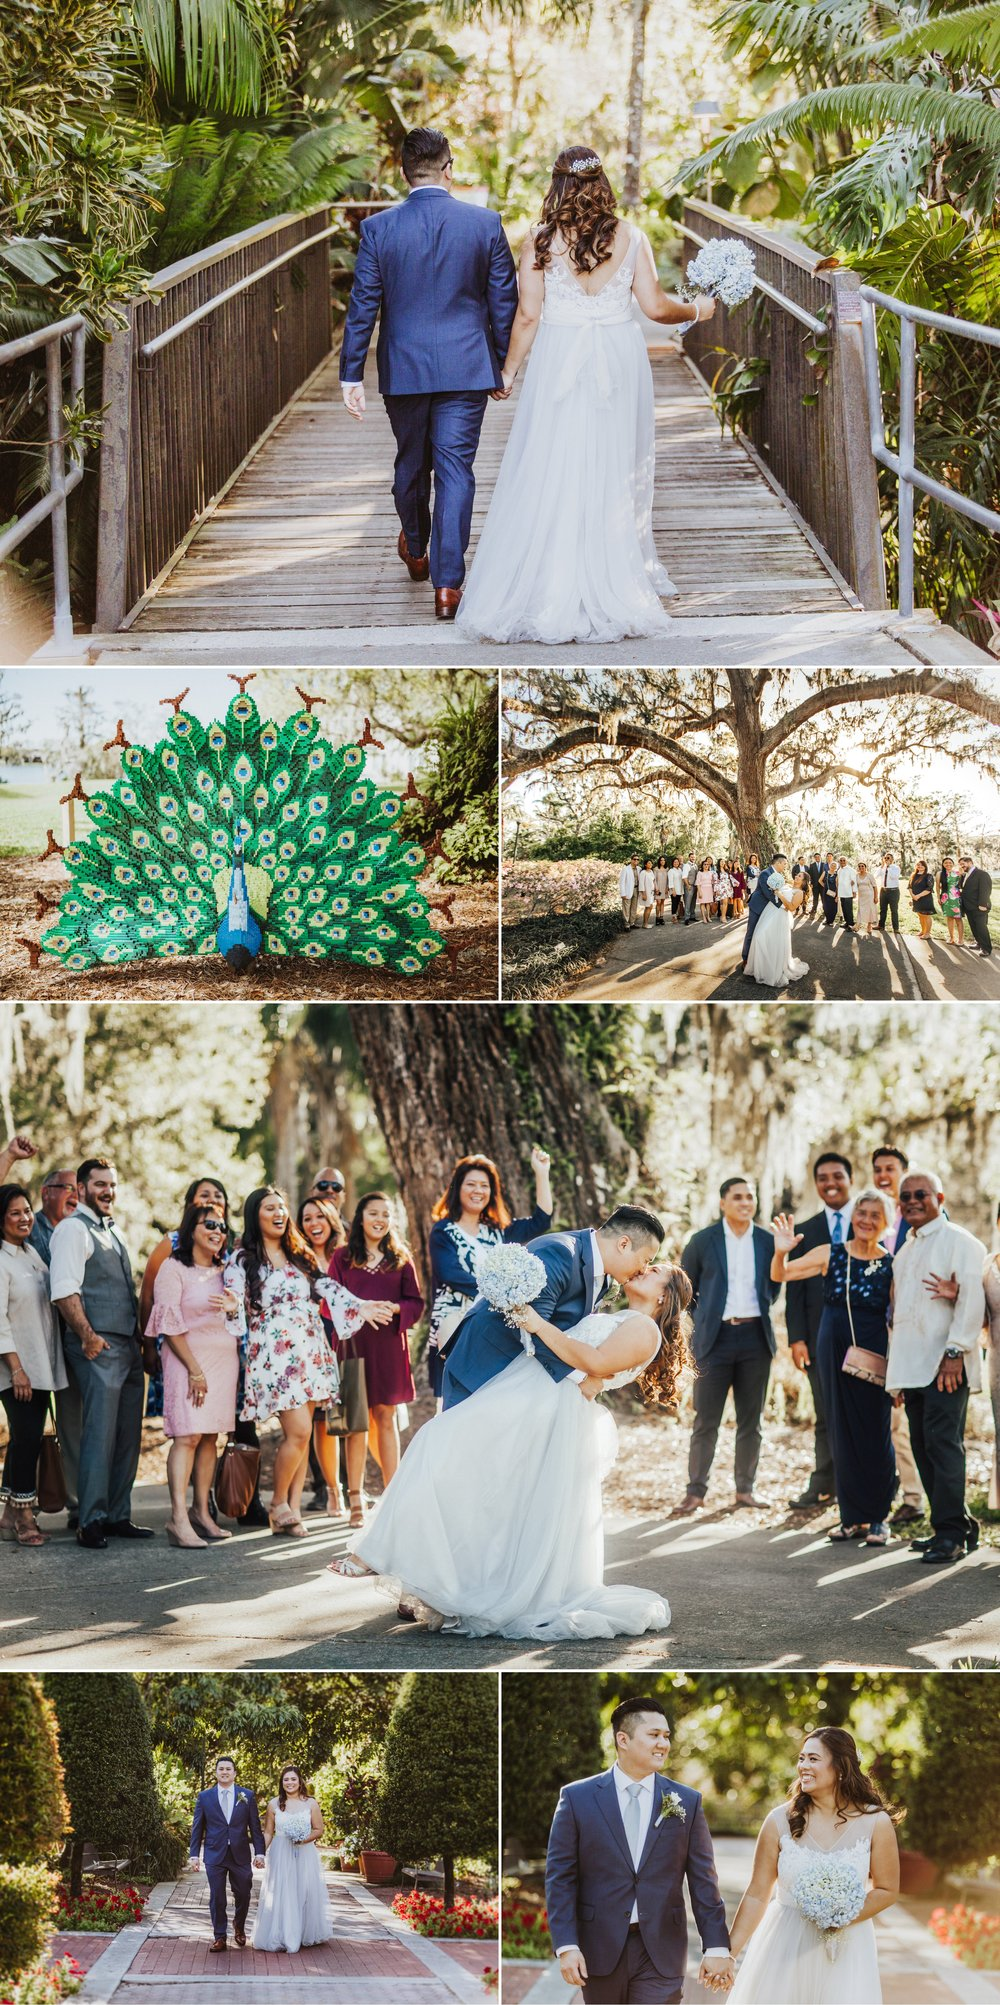 Romantic Leu Gardens Wedding Pictures - Winter Park Wedding Photographer Shaina DeCiryan- Effie+Phillip6.jpg